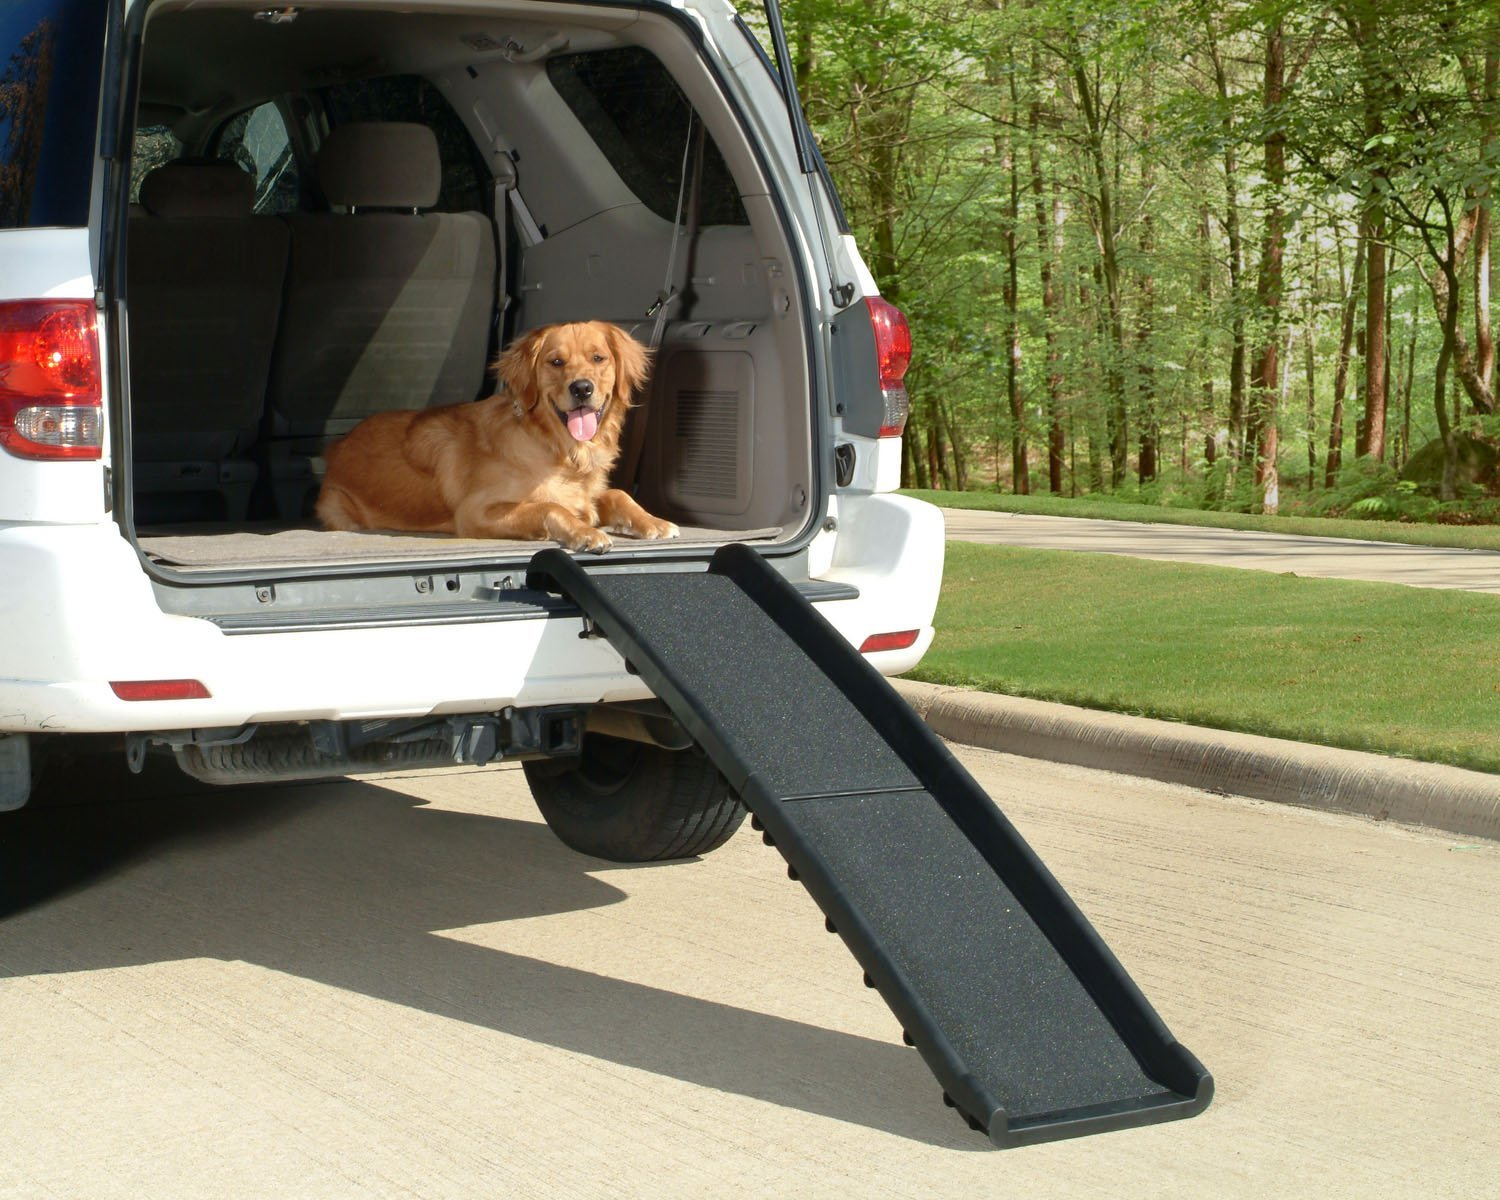 PetSafe-Solvit-UltraLite-Bi-Fold-Pet-Ramp-62-in.-Portable-Lightweight-Dog-and-Cat-Ramp-Great-for-Cars-Trucks-and-SUVs 10 Best Pet Ramps